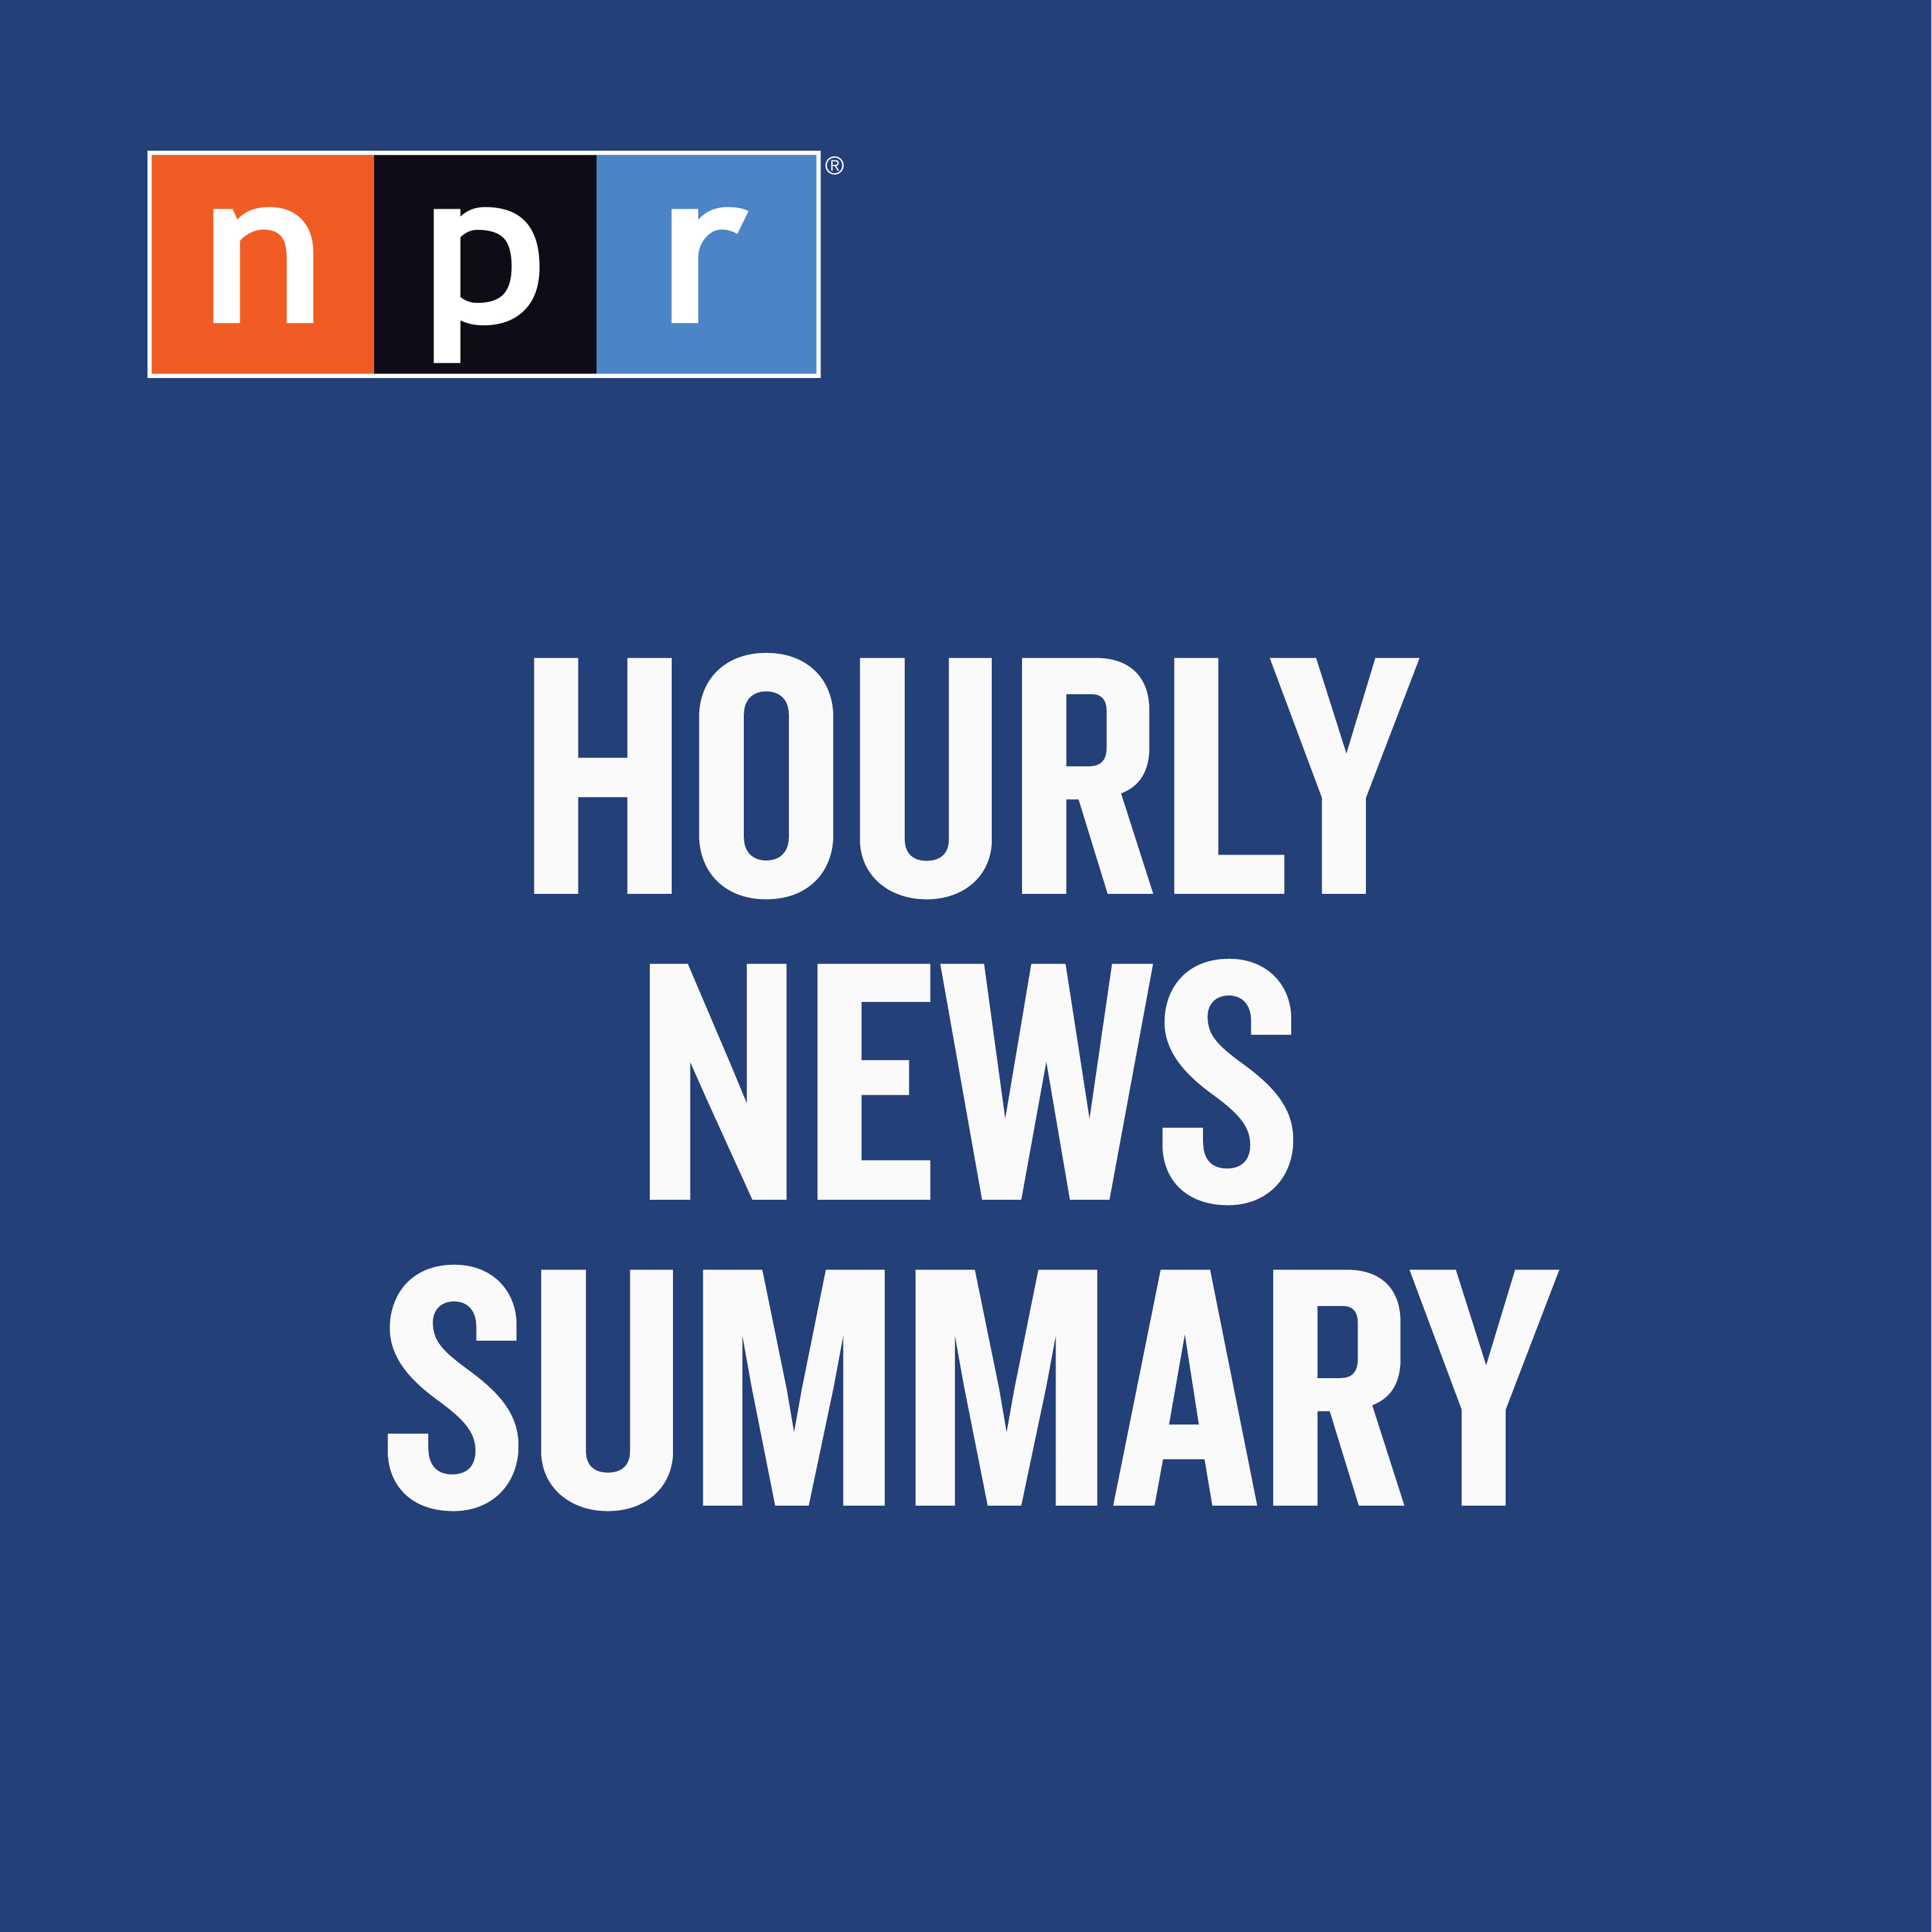 NPR: Hourly News Summary Podcast